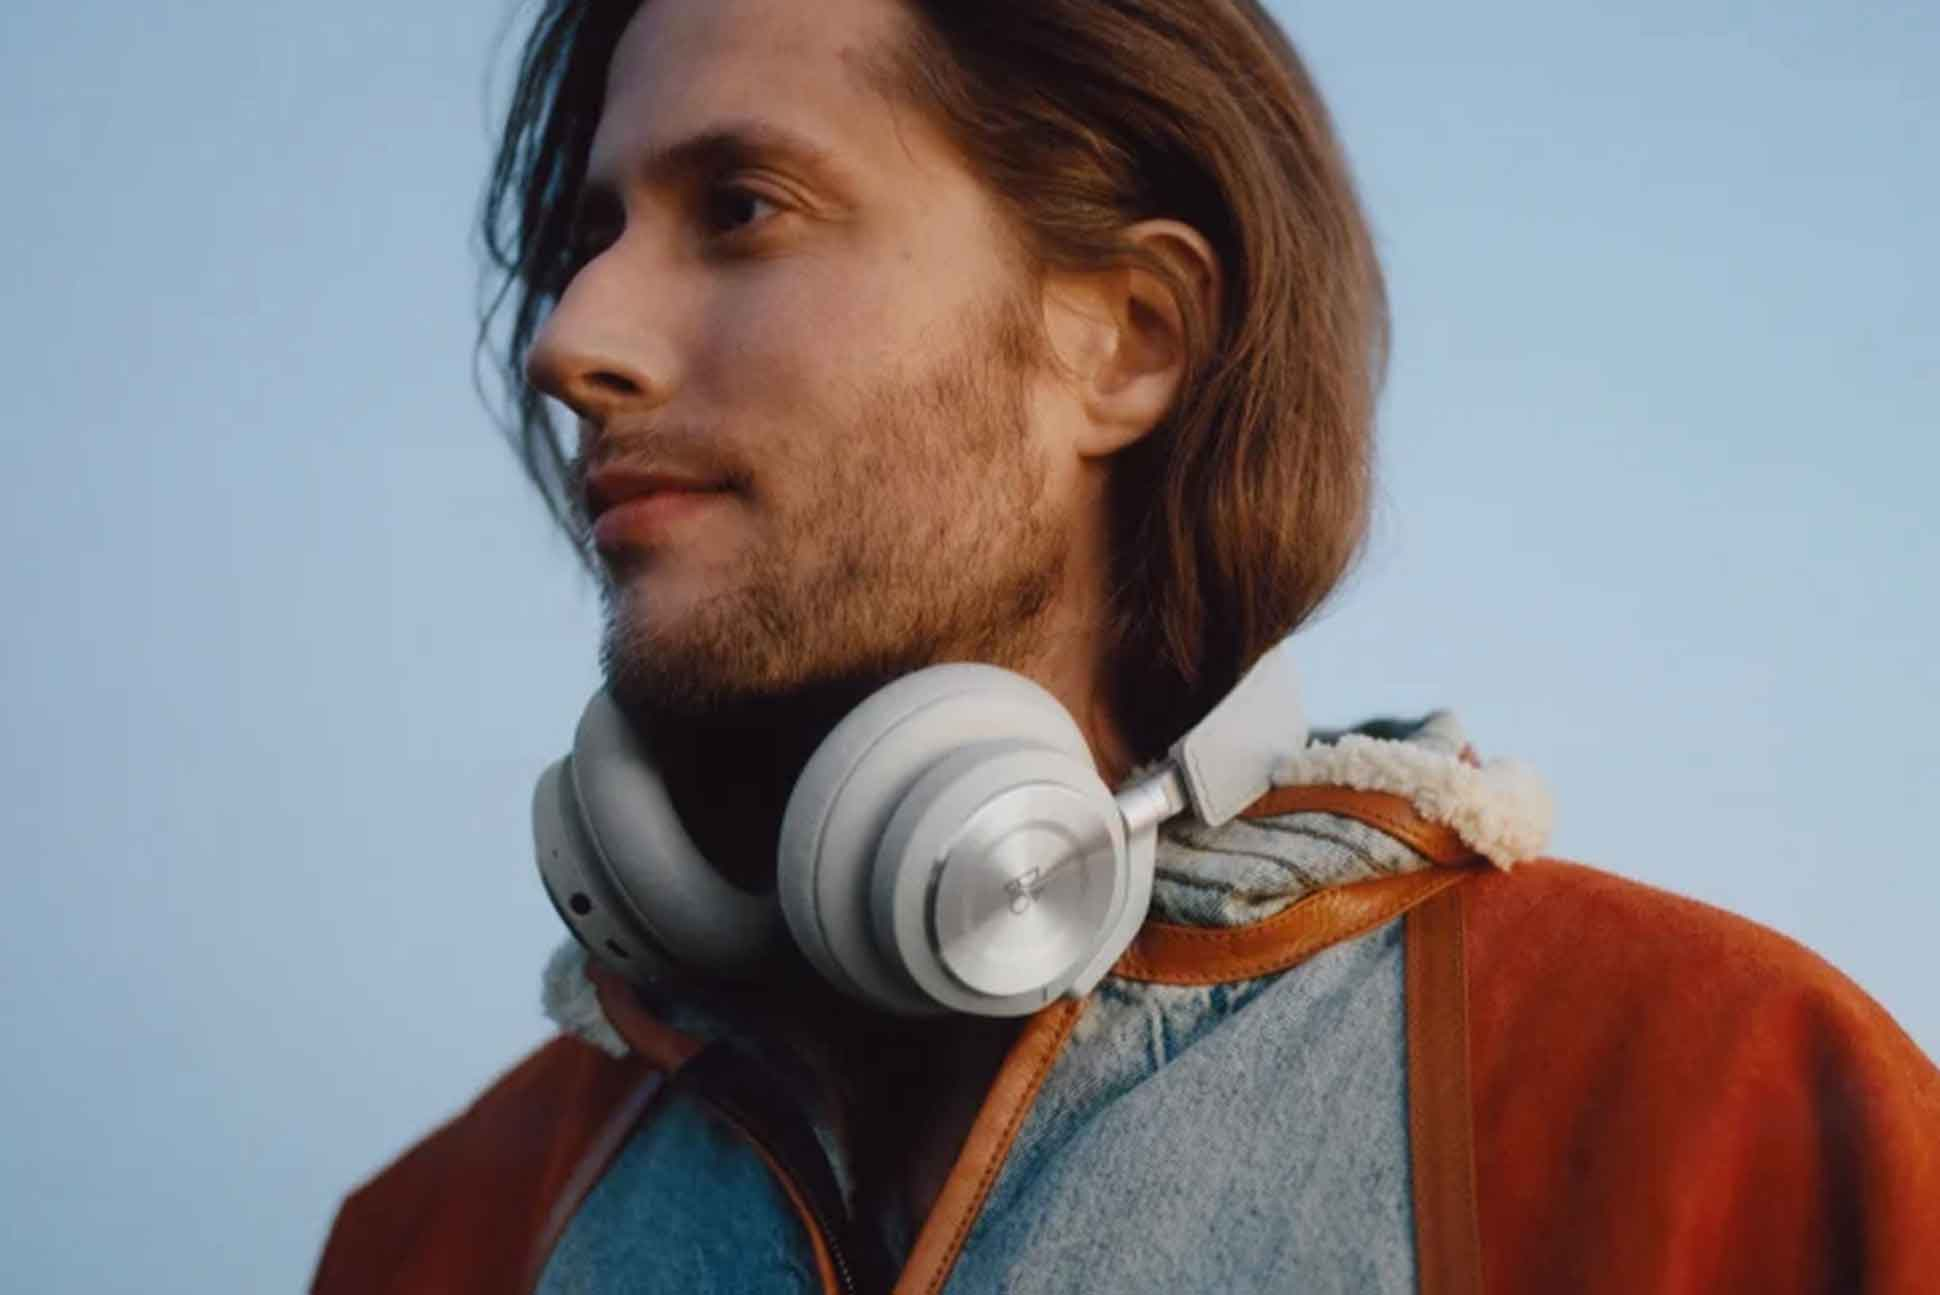 Ludwig Göransson, RIMOWA X Bang & Olufsen, Beoplay H9i